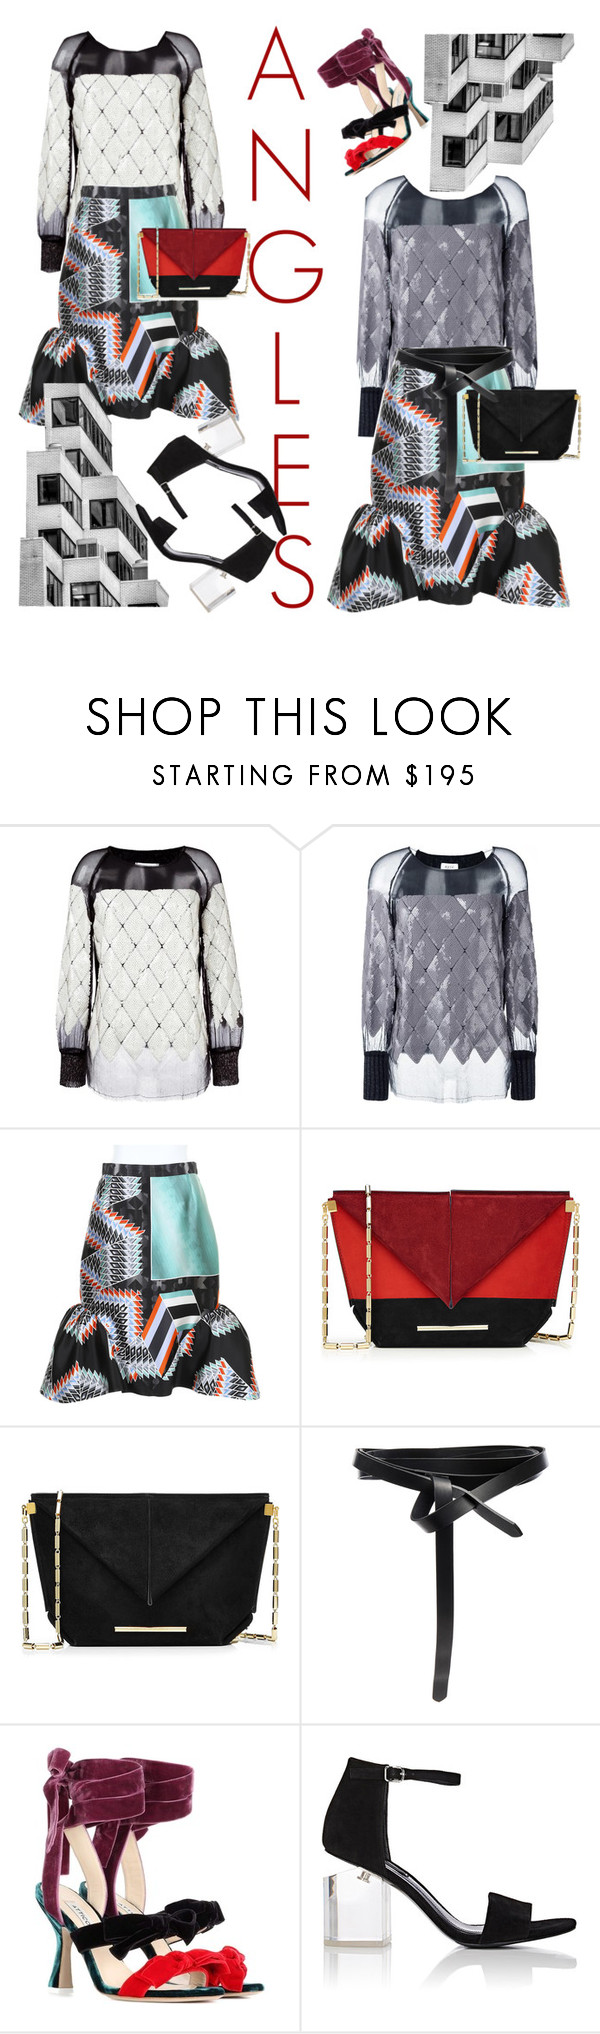 """""""Cleaning Out My Closet: ANGLES"""" by bmwm52003 ❤ liked on Polyvore featuring Aviù, Peter Pilotto, Roland Mouret, Isabel Marant, Attico and Alexander Wang"""